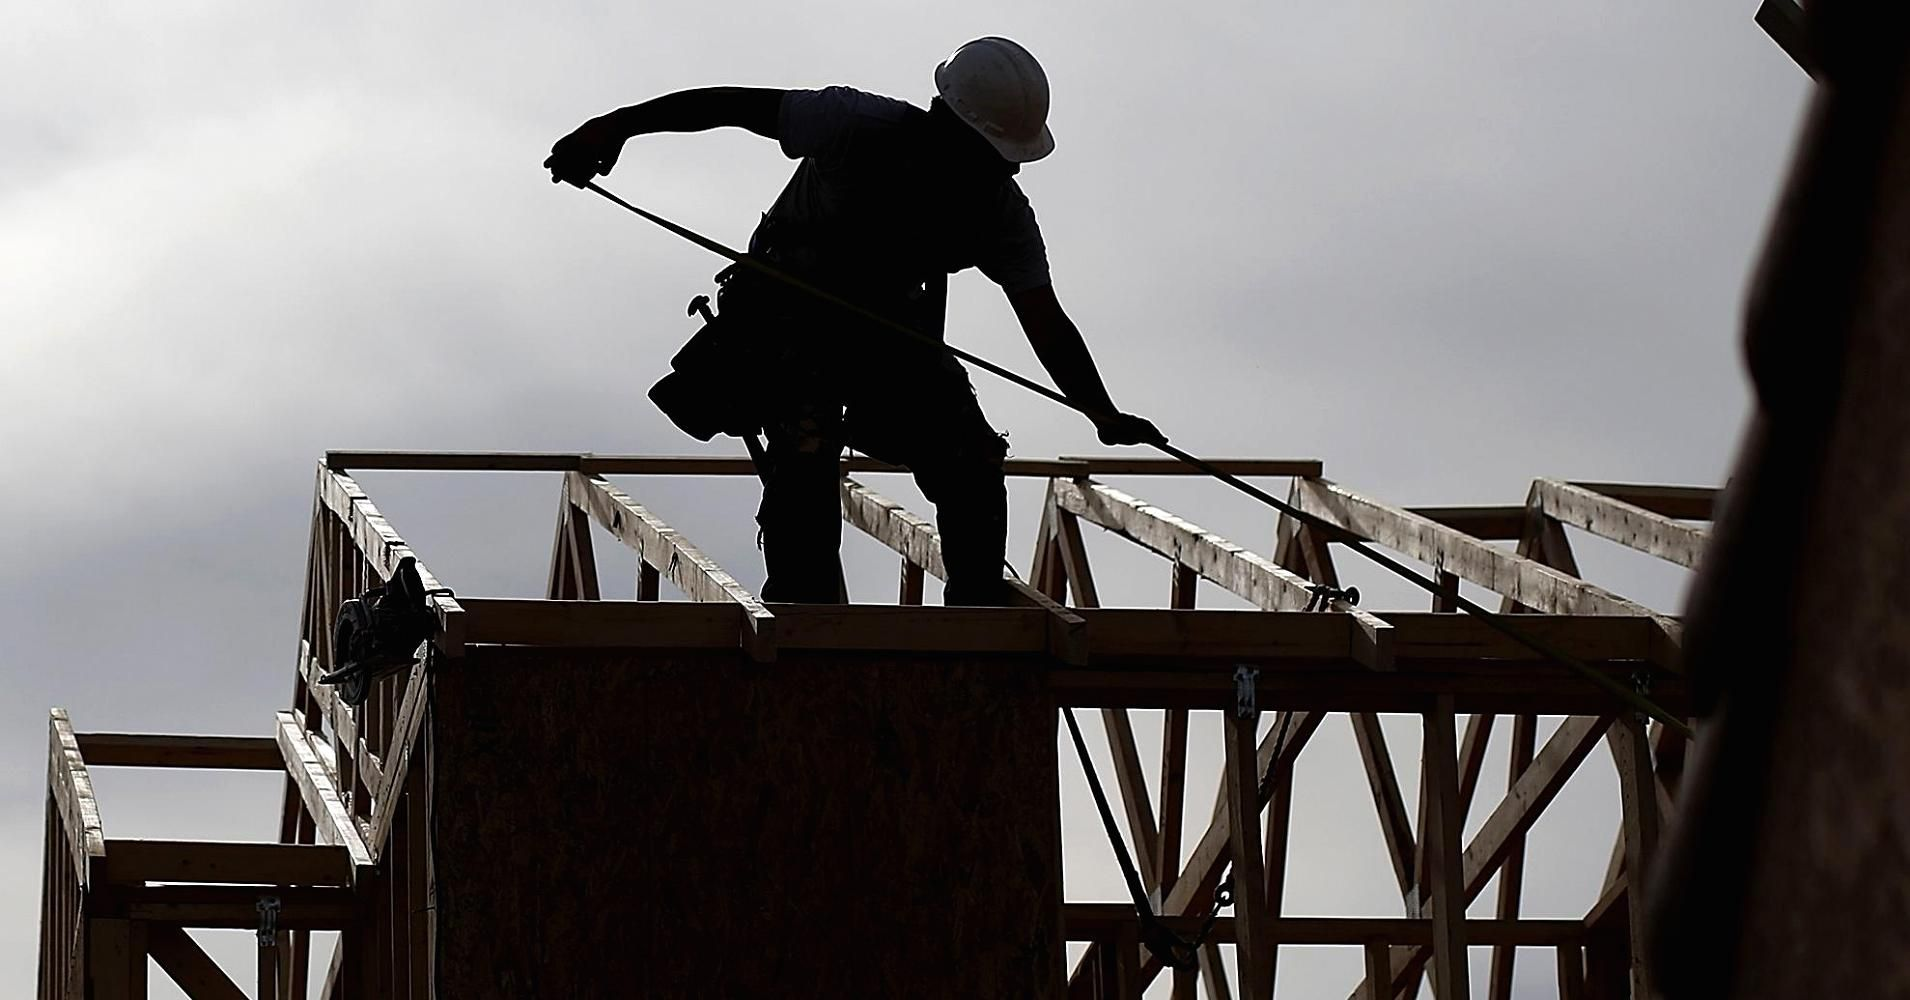 There are tons of newly built homes just the wrong kind